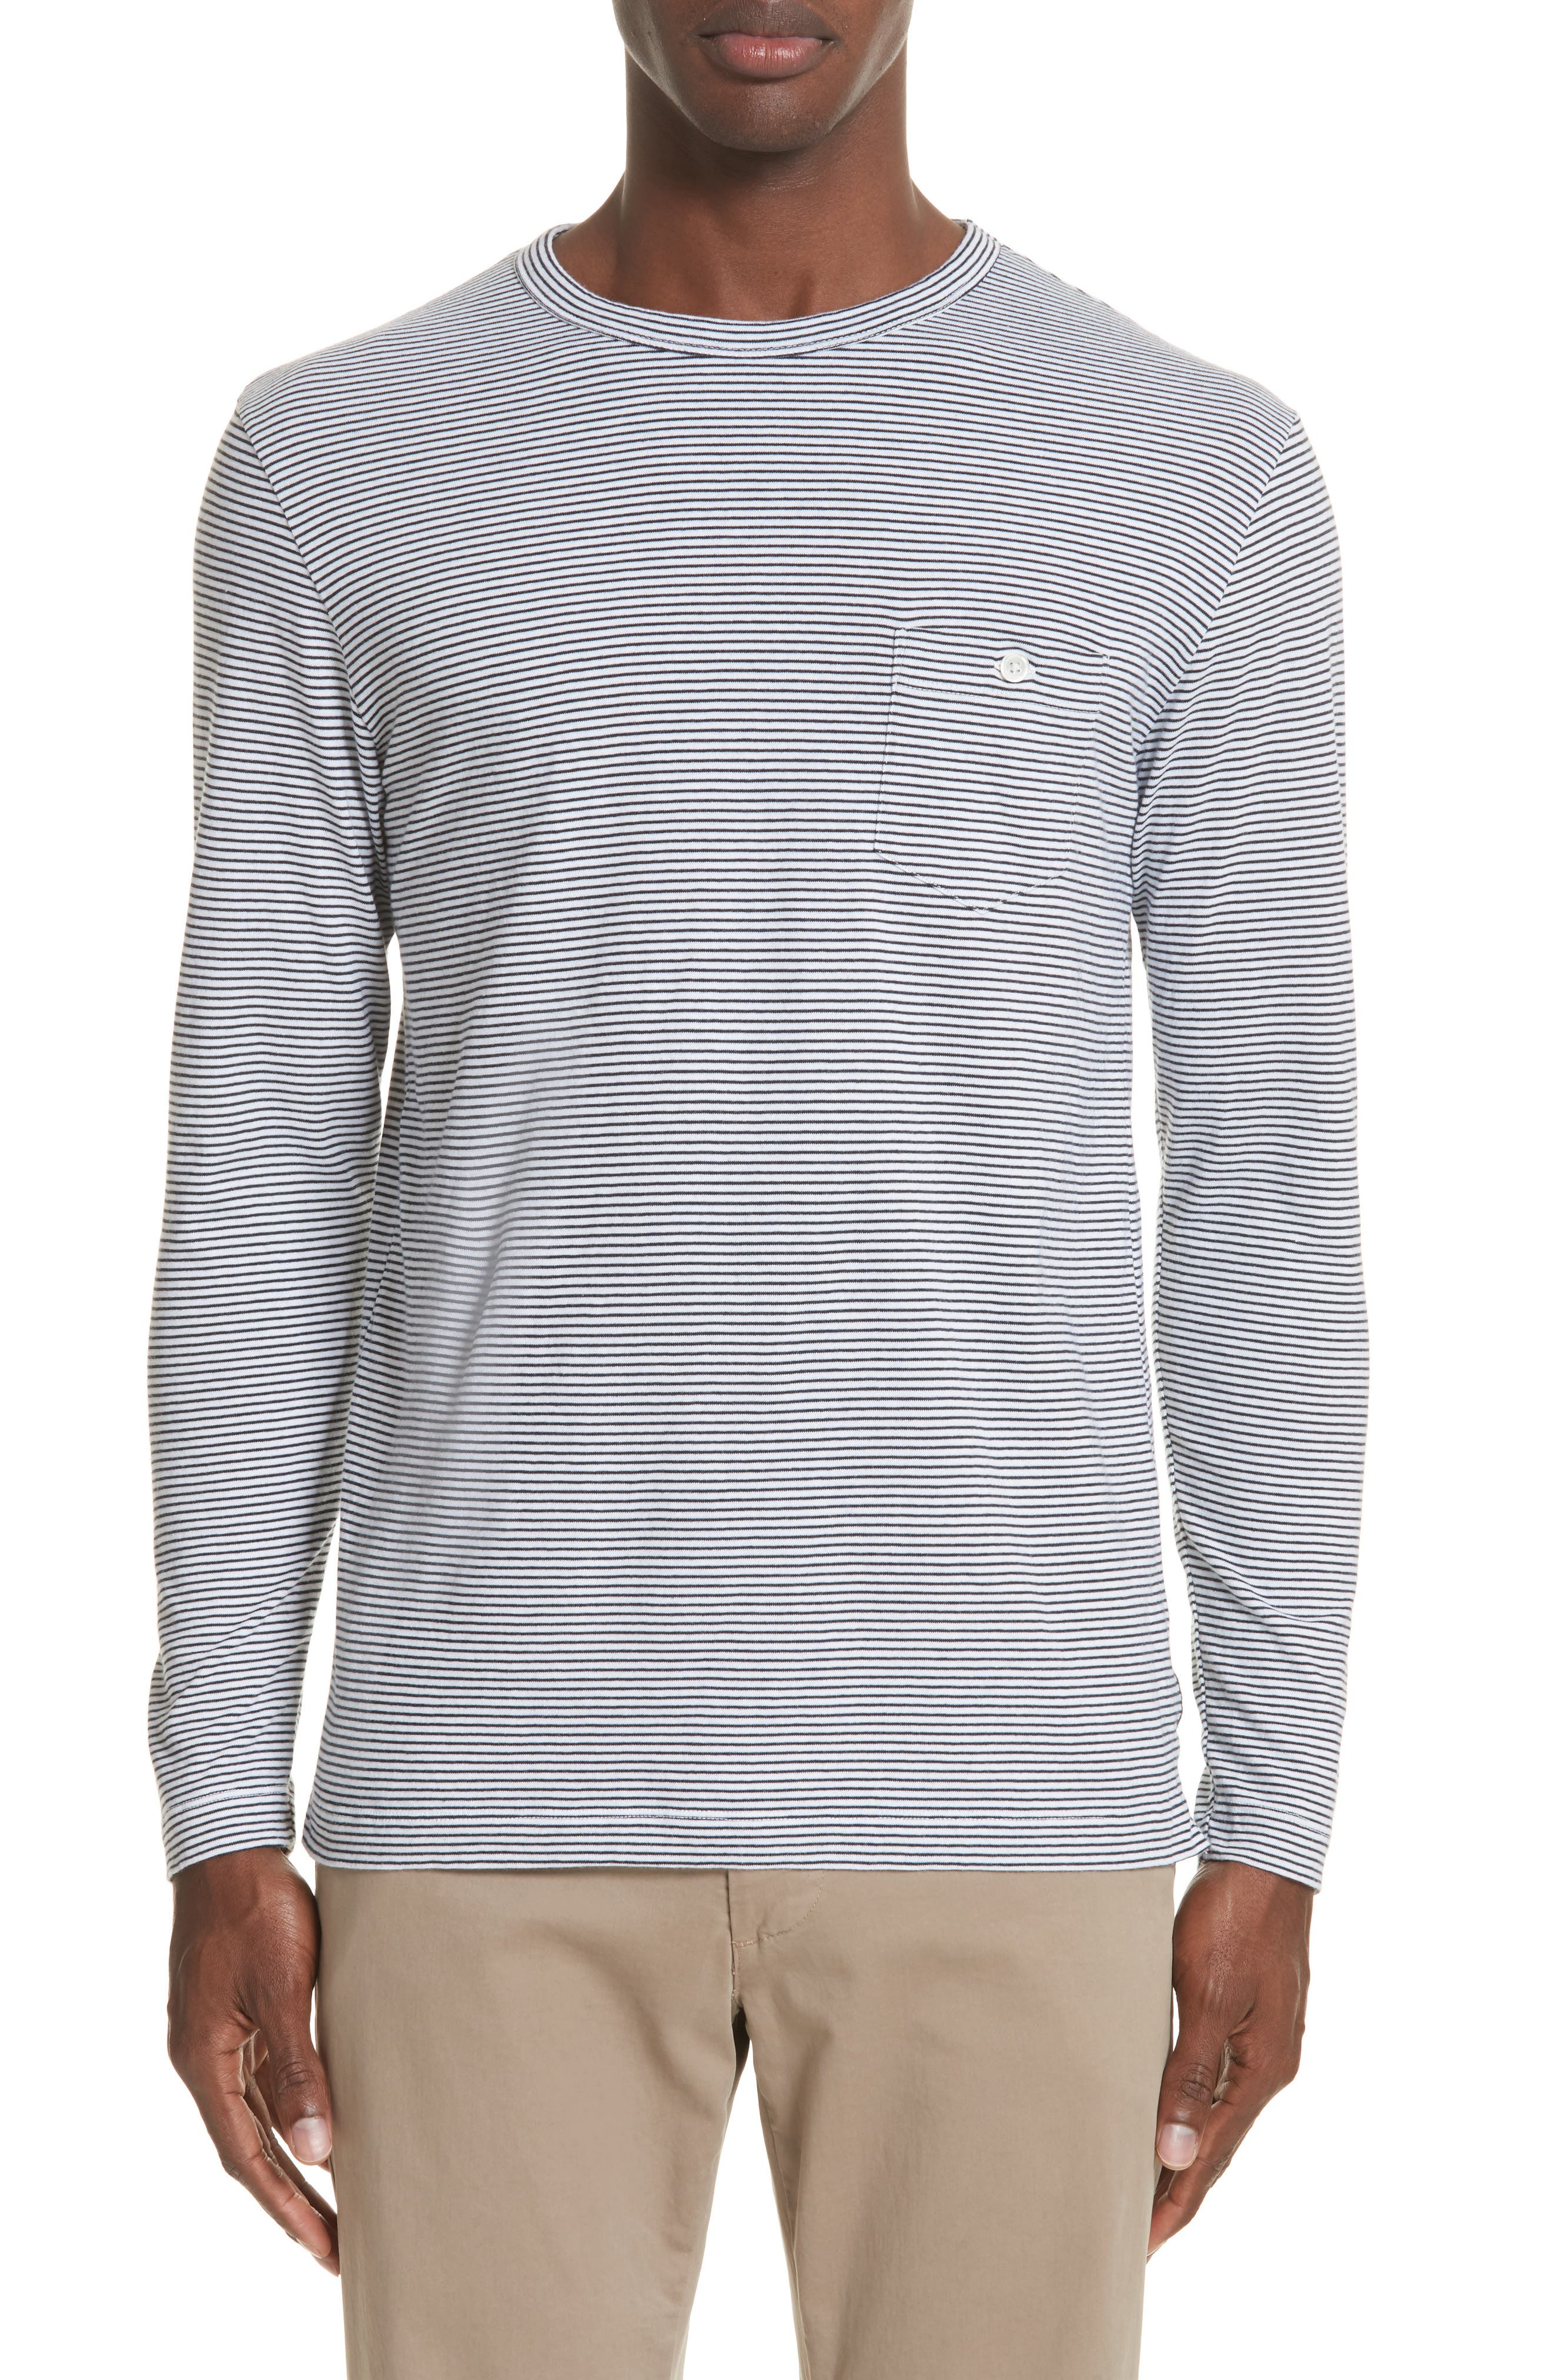 Todd Snyder Stripe Long Sleeve T-Shirt,                         Main,                         color, Navy